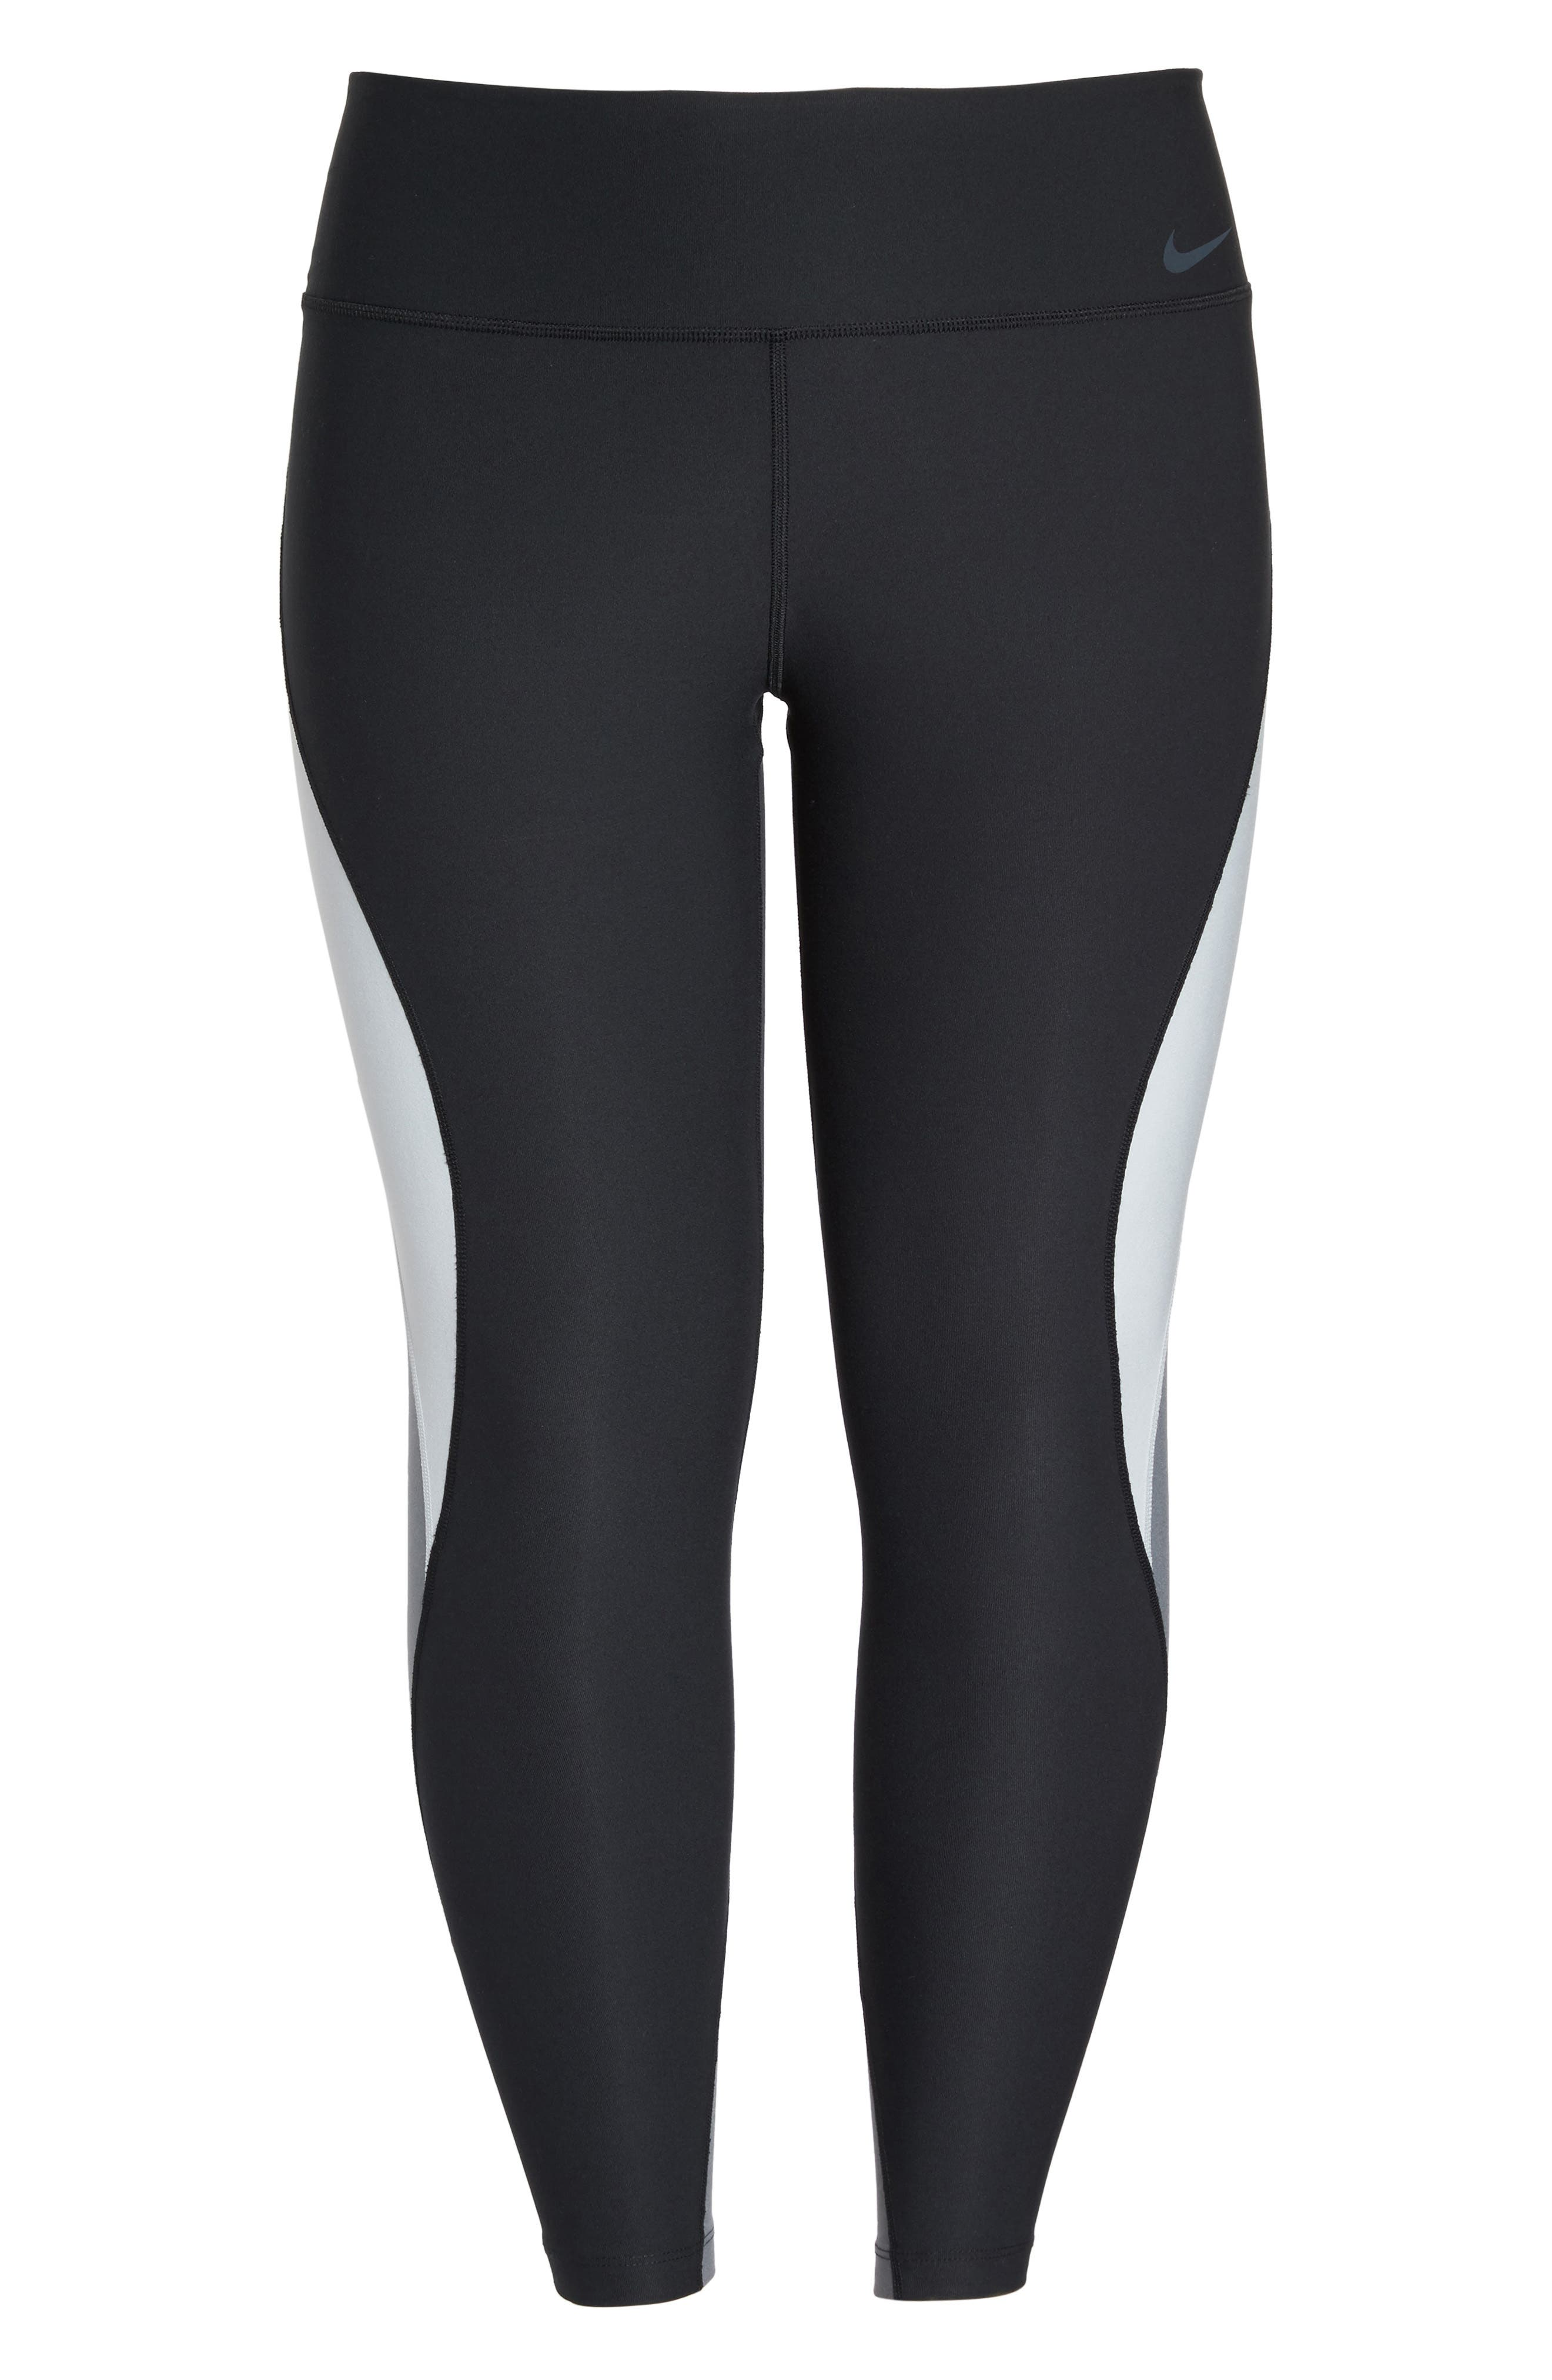 Power Legend Training Tights,                             Alternate thumbnail 6, color,                             Black/ Platinum/ Grey